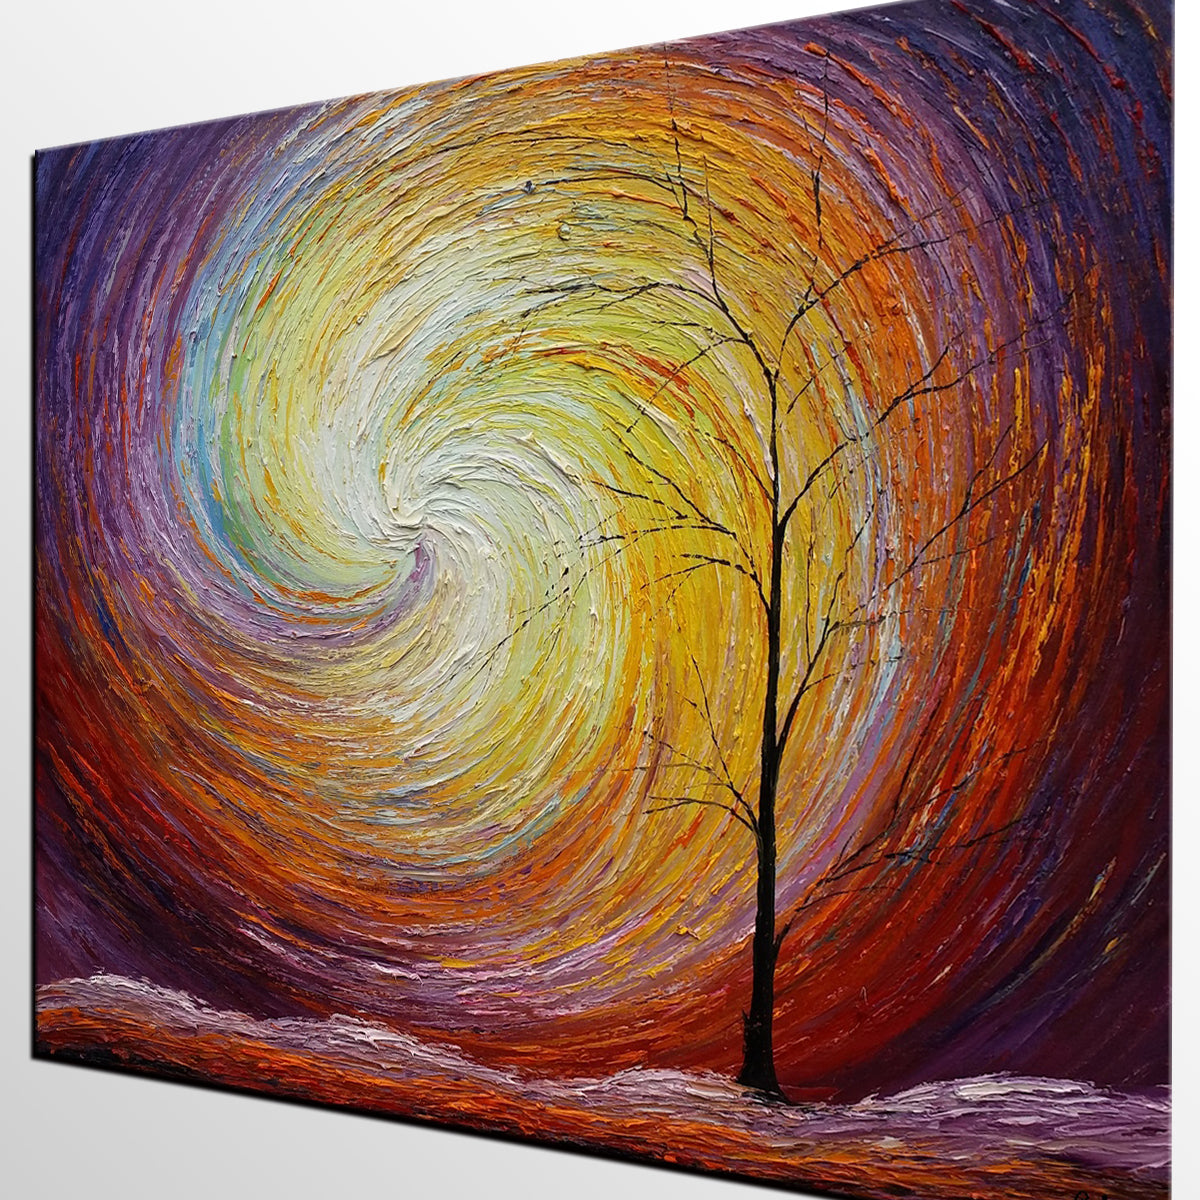 Landscape Painting, Large Art, Canvas Art, Wall Art, Modern Artwork, Canvas Painting, Modern Art, Oil Painting, Tree Painting 205